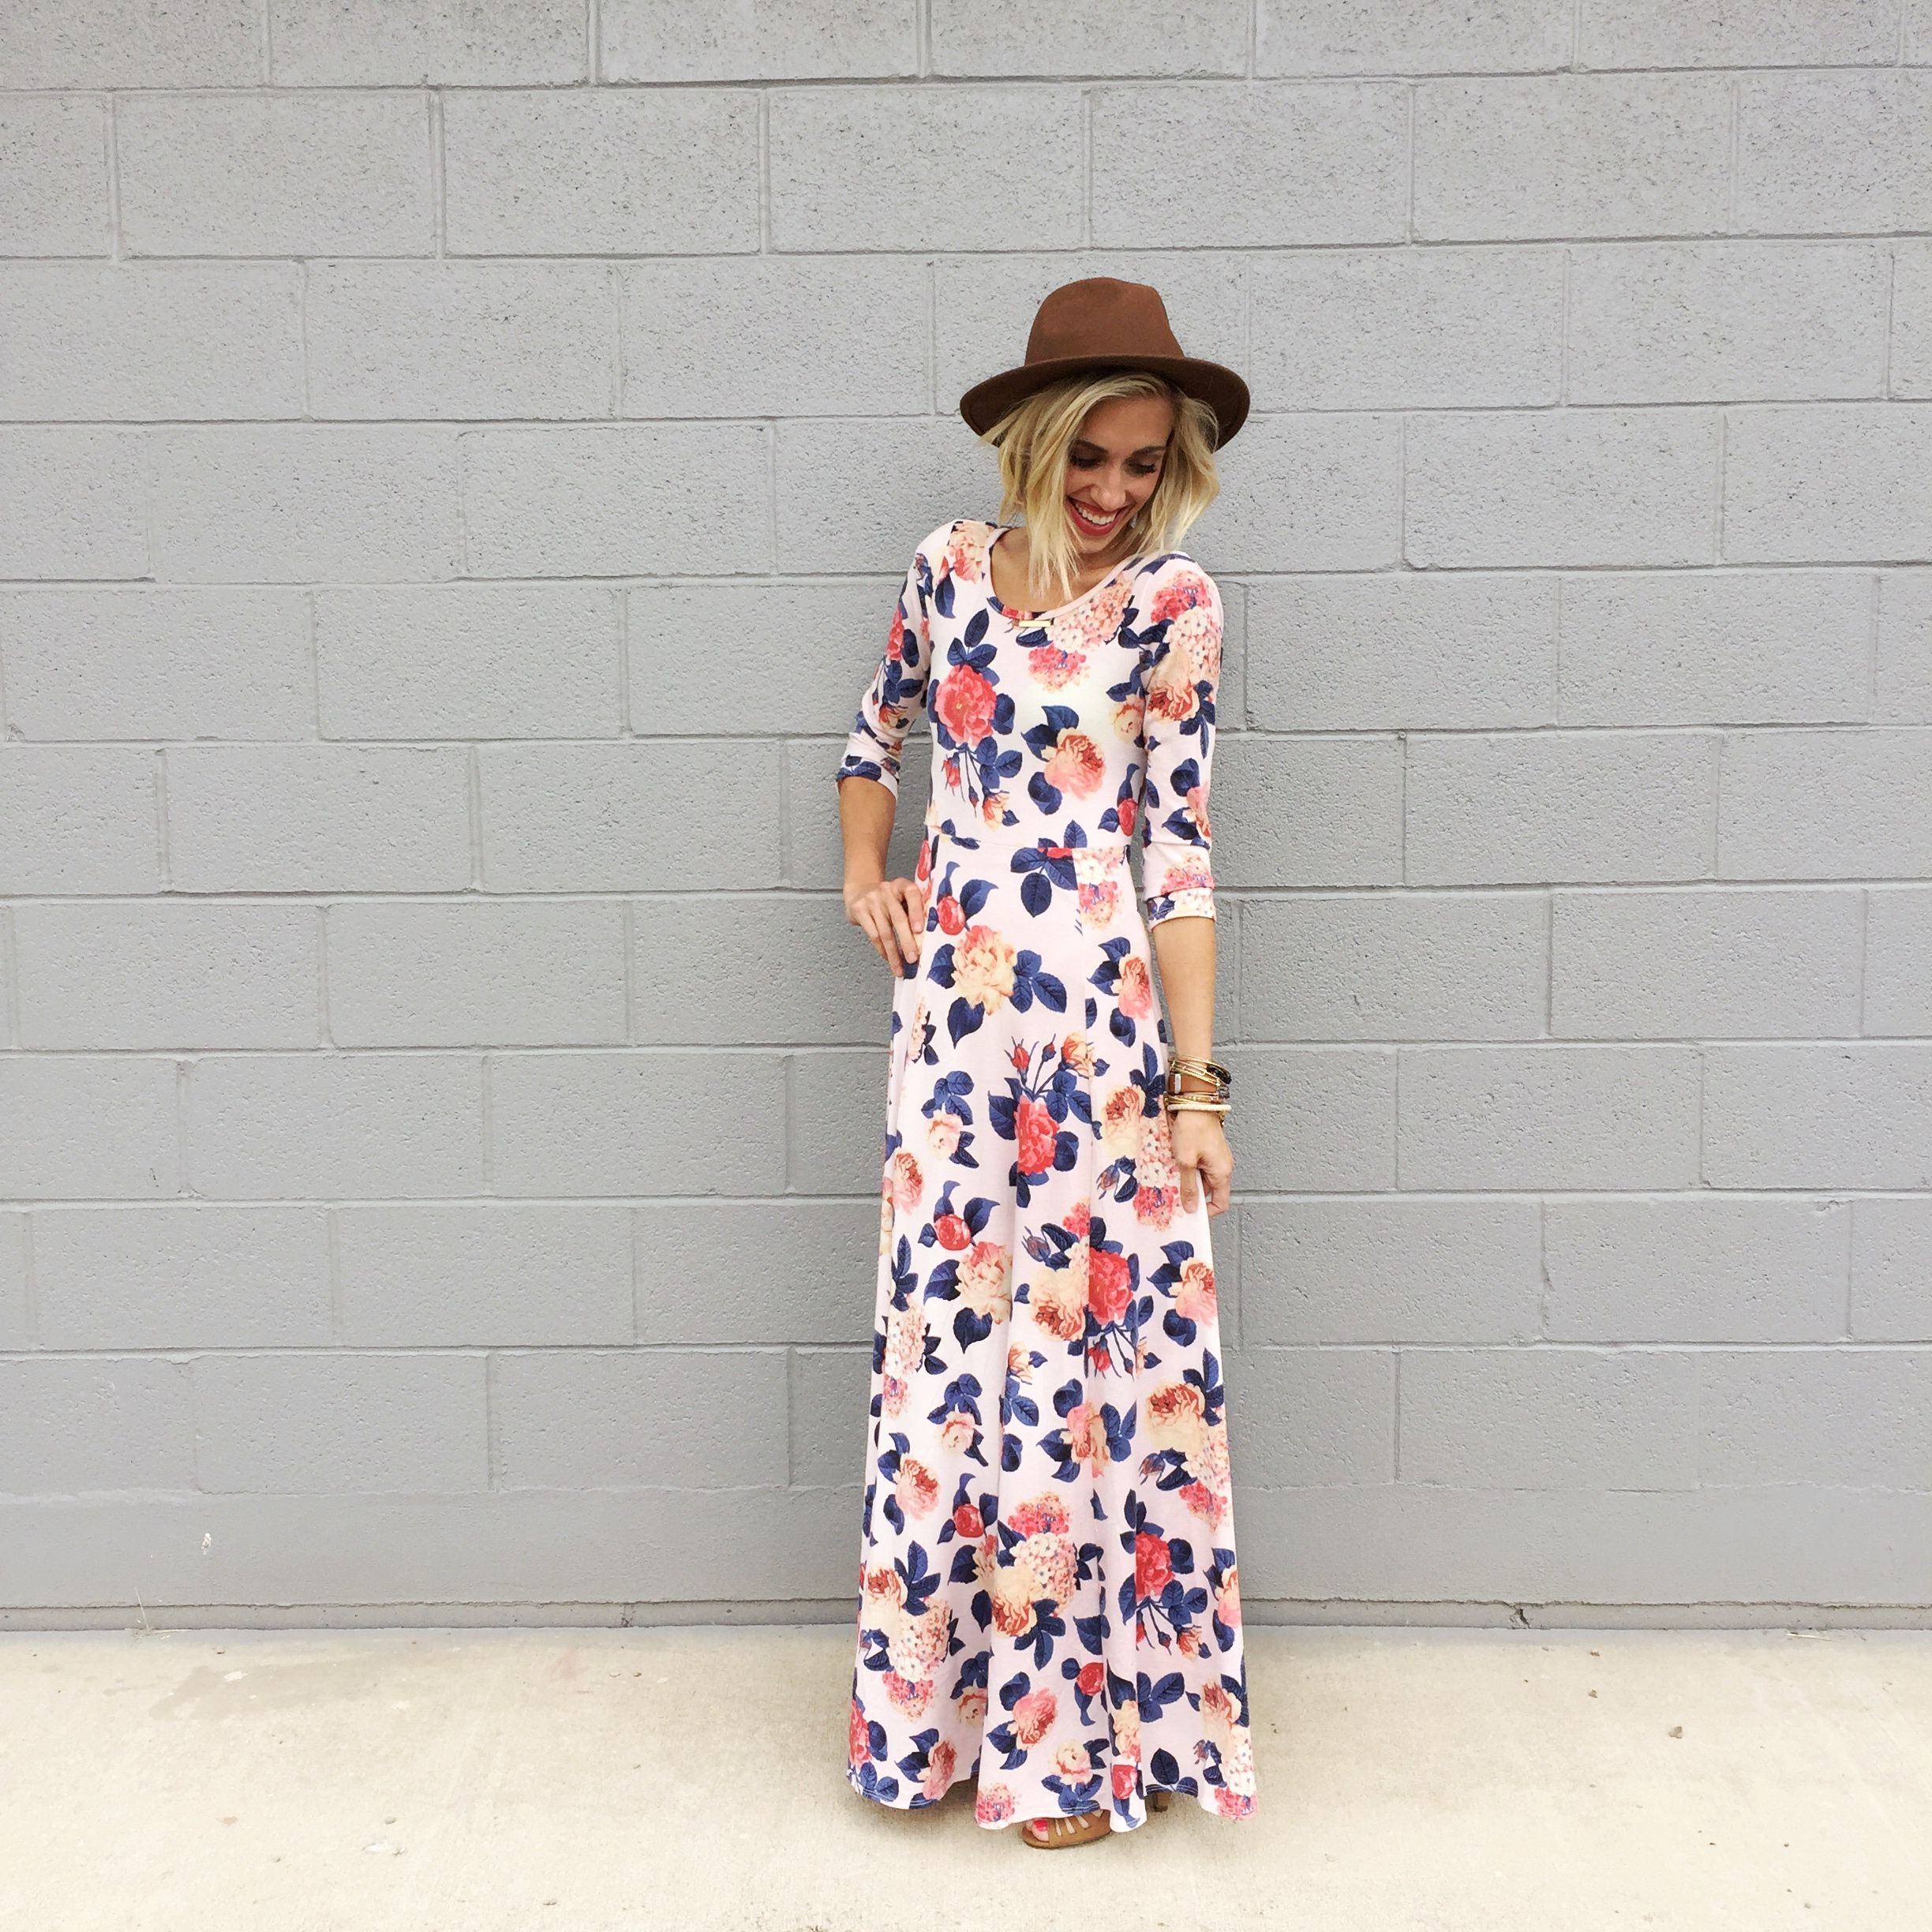 Floral maxi my style pinterest maxi dresses and skirts skirts